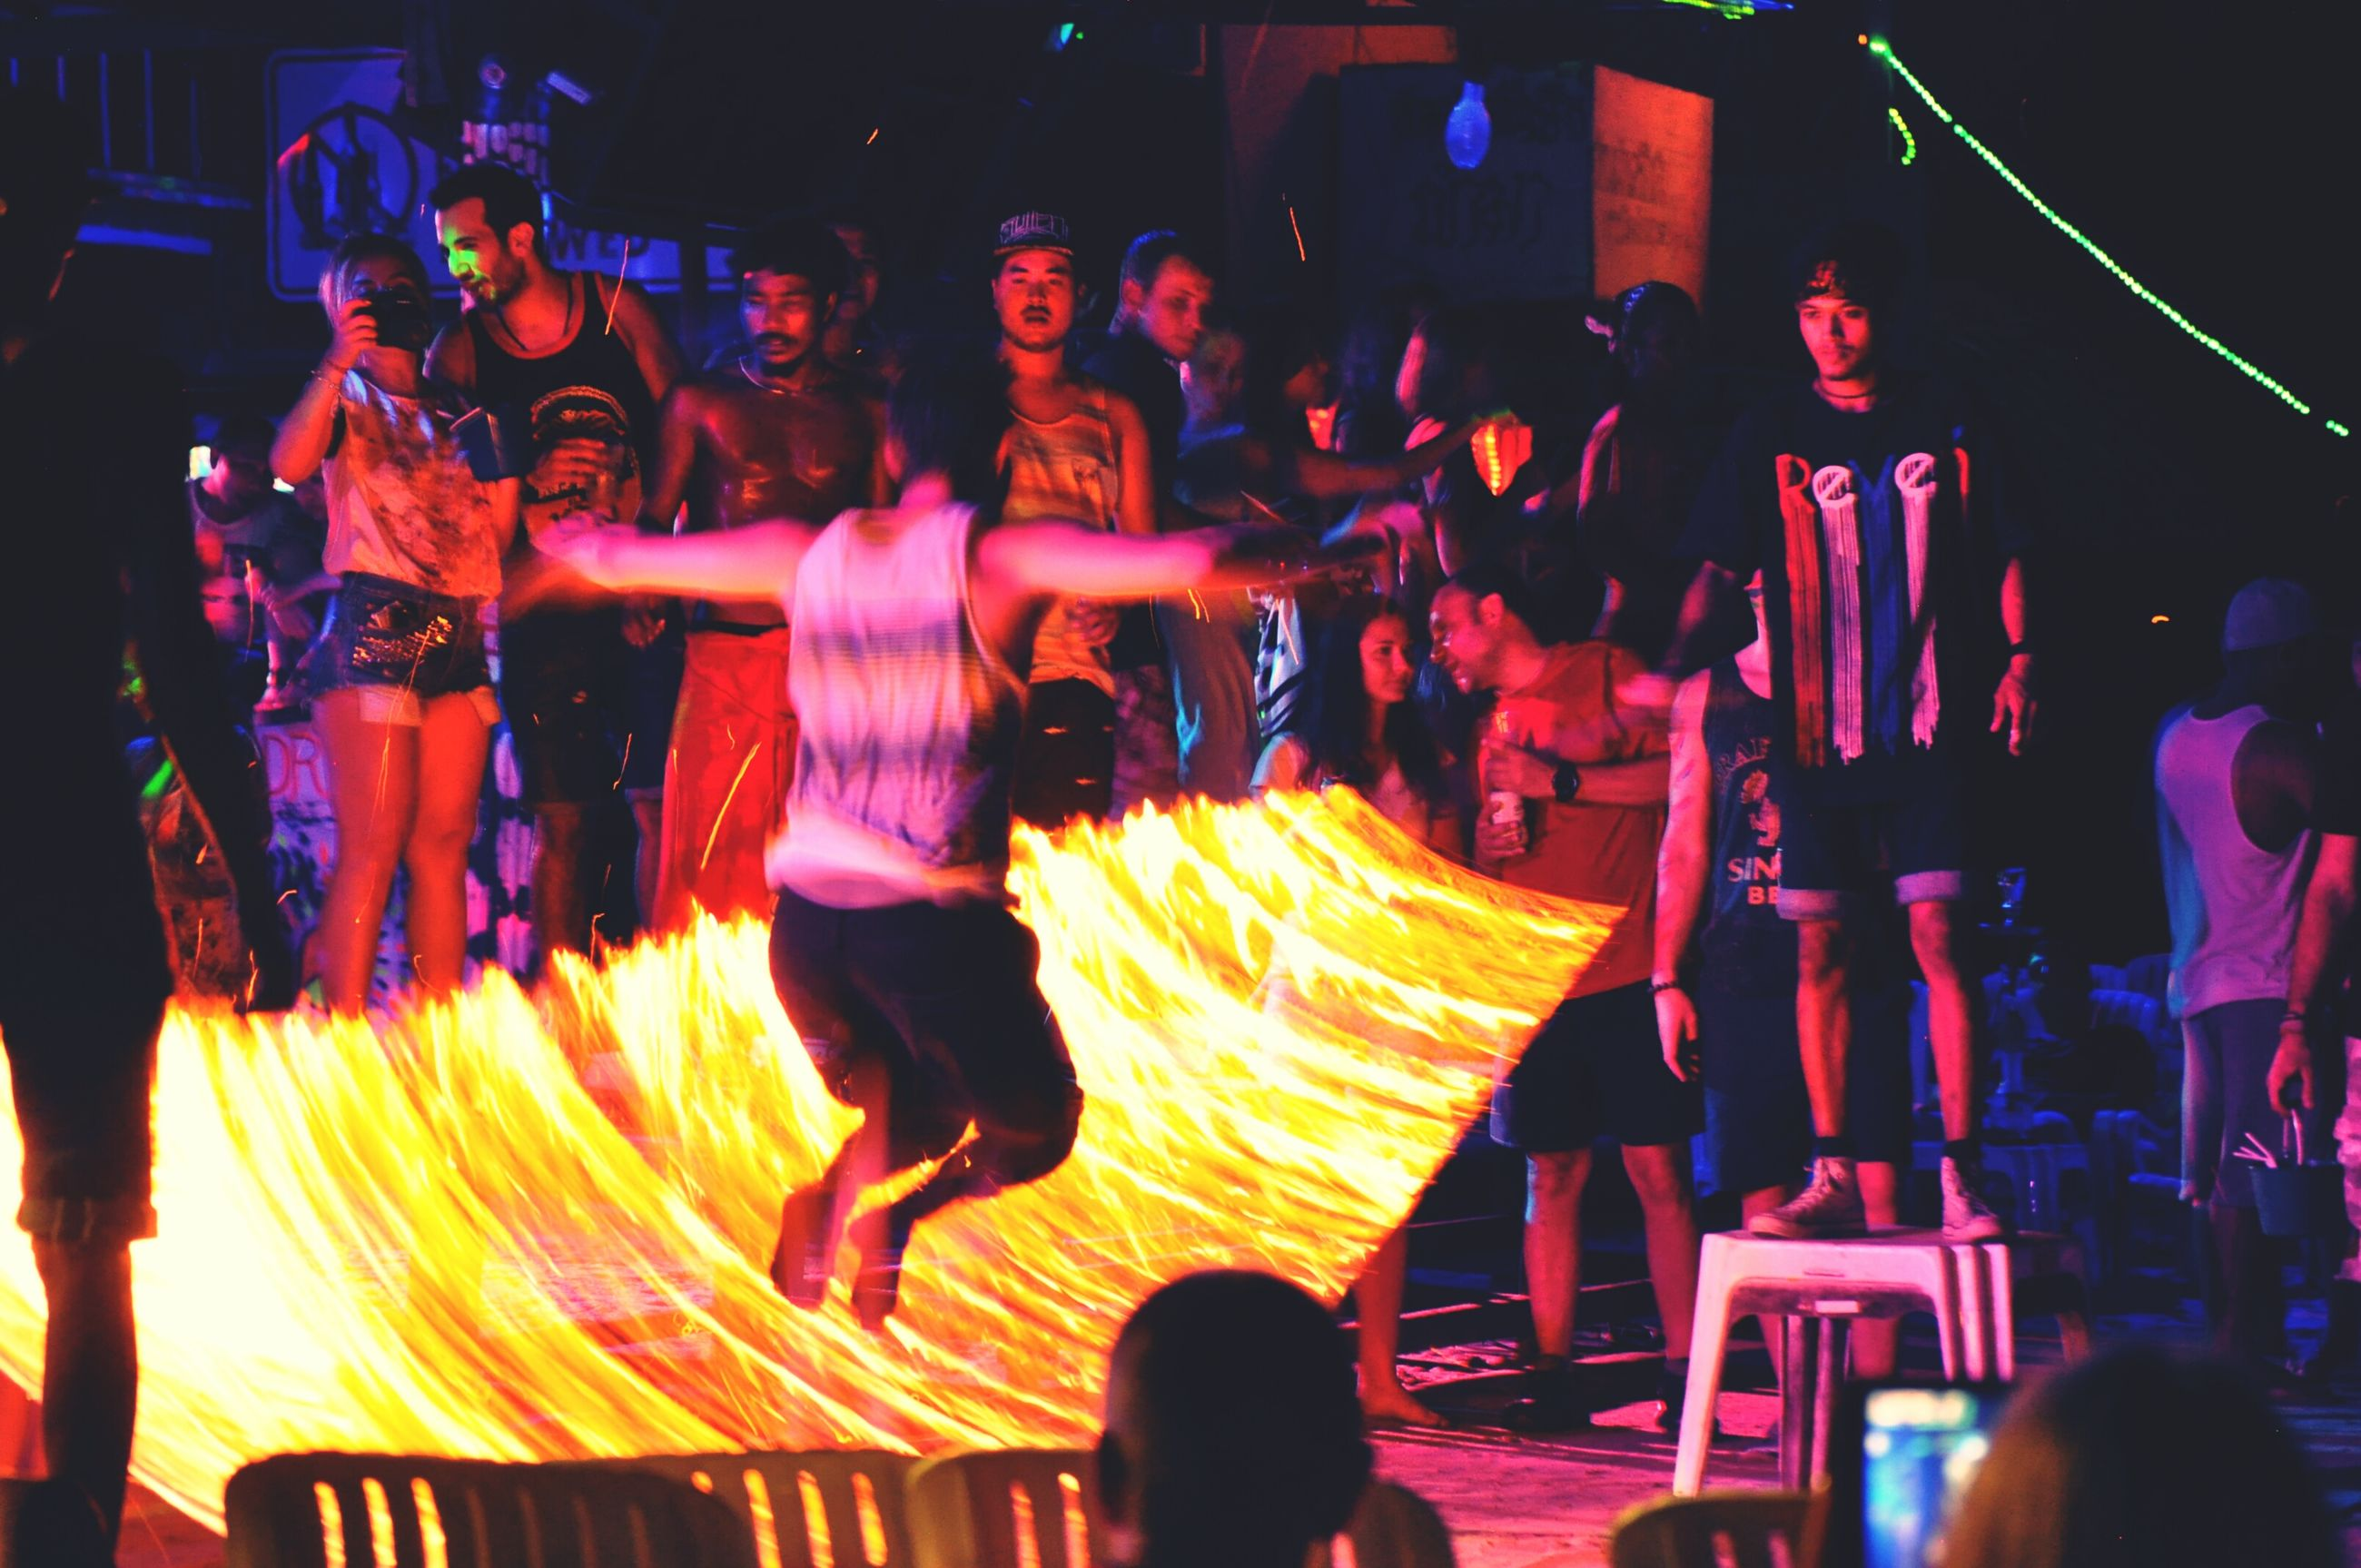 illuminated, men, lifestyles, night, person, large group of people, leisure activity, rear view, crowd, celebration, indoors, standing, arts culture and entertainment, lighting equipment, event, walking, performance, casual clothing, music